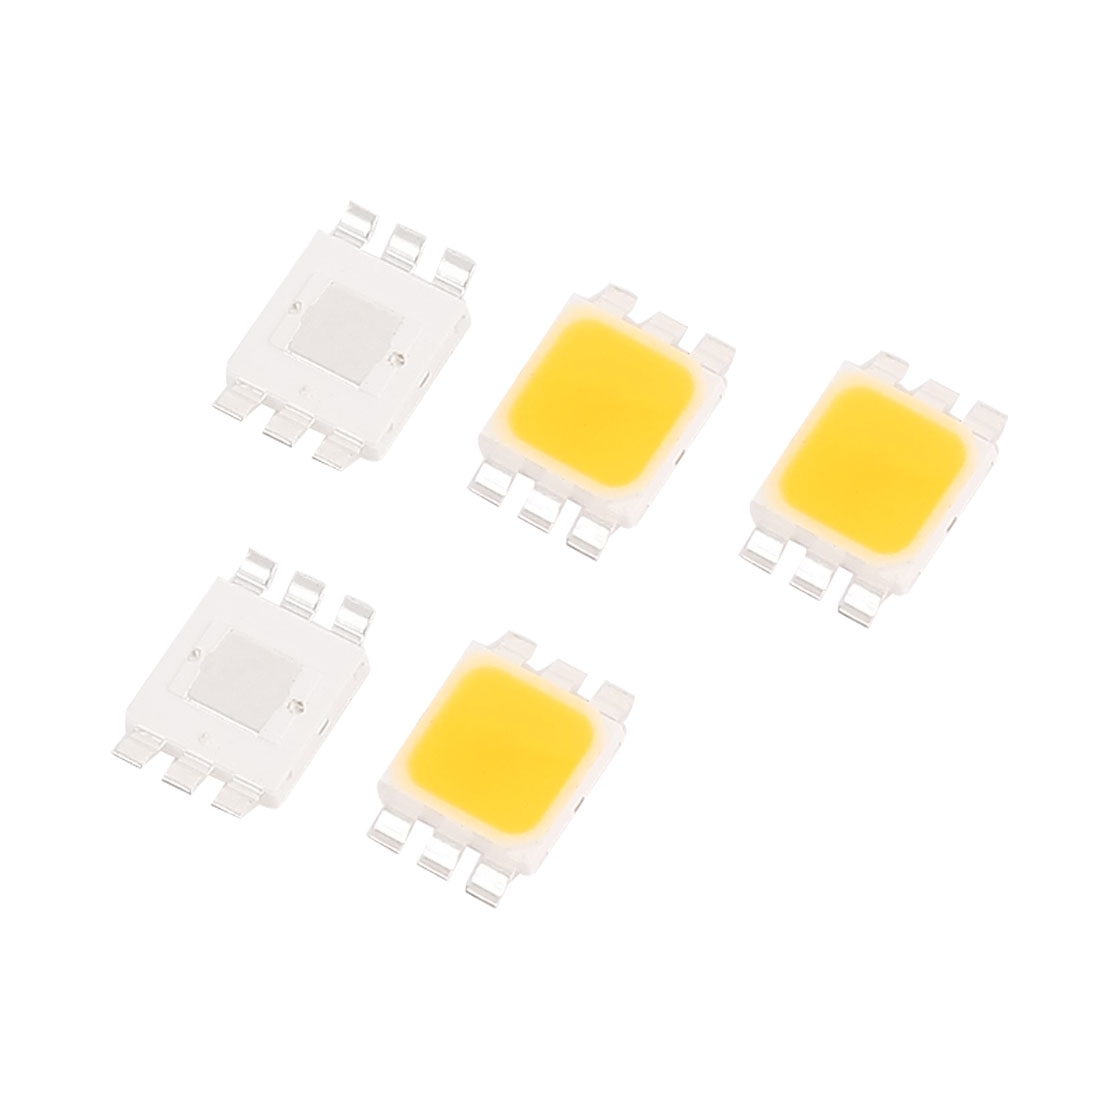 3.0-3.6V 350mA 1W Warm White SMD 5050 LED Bead Diodes Chip Lamp Emitter 5pcs